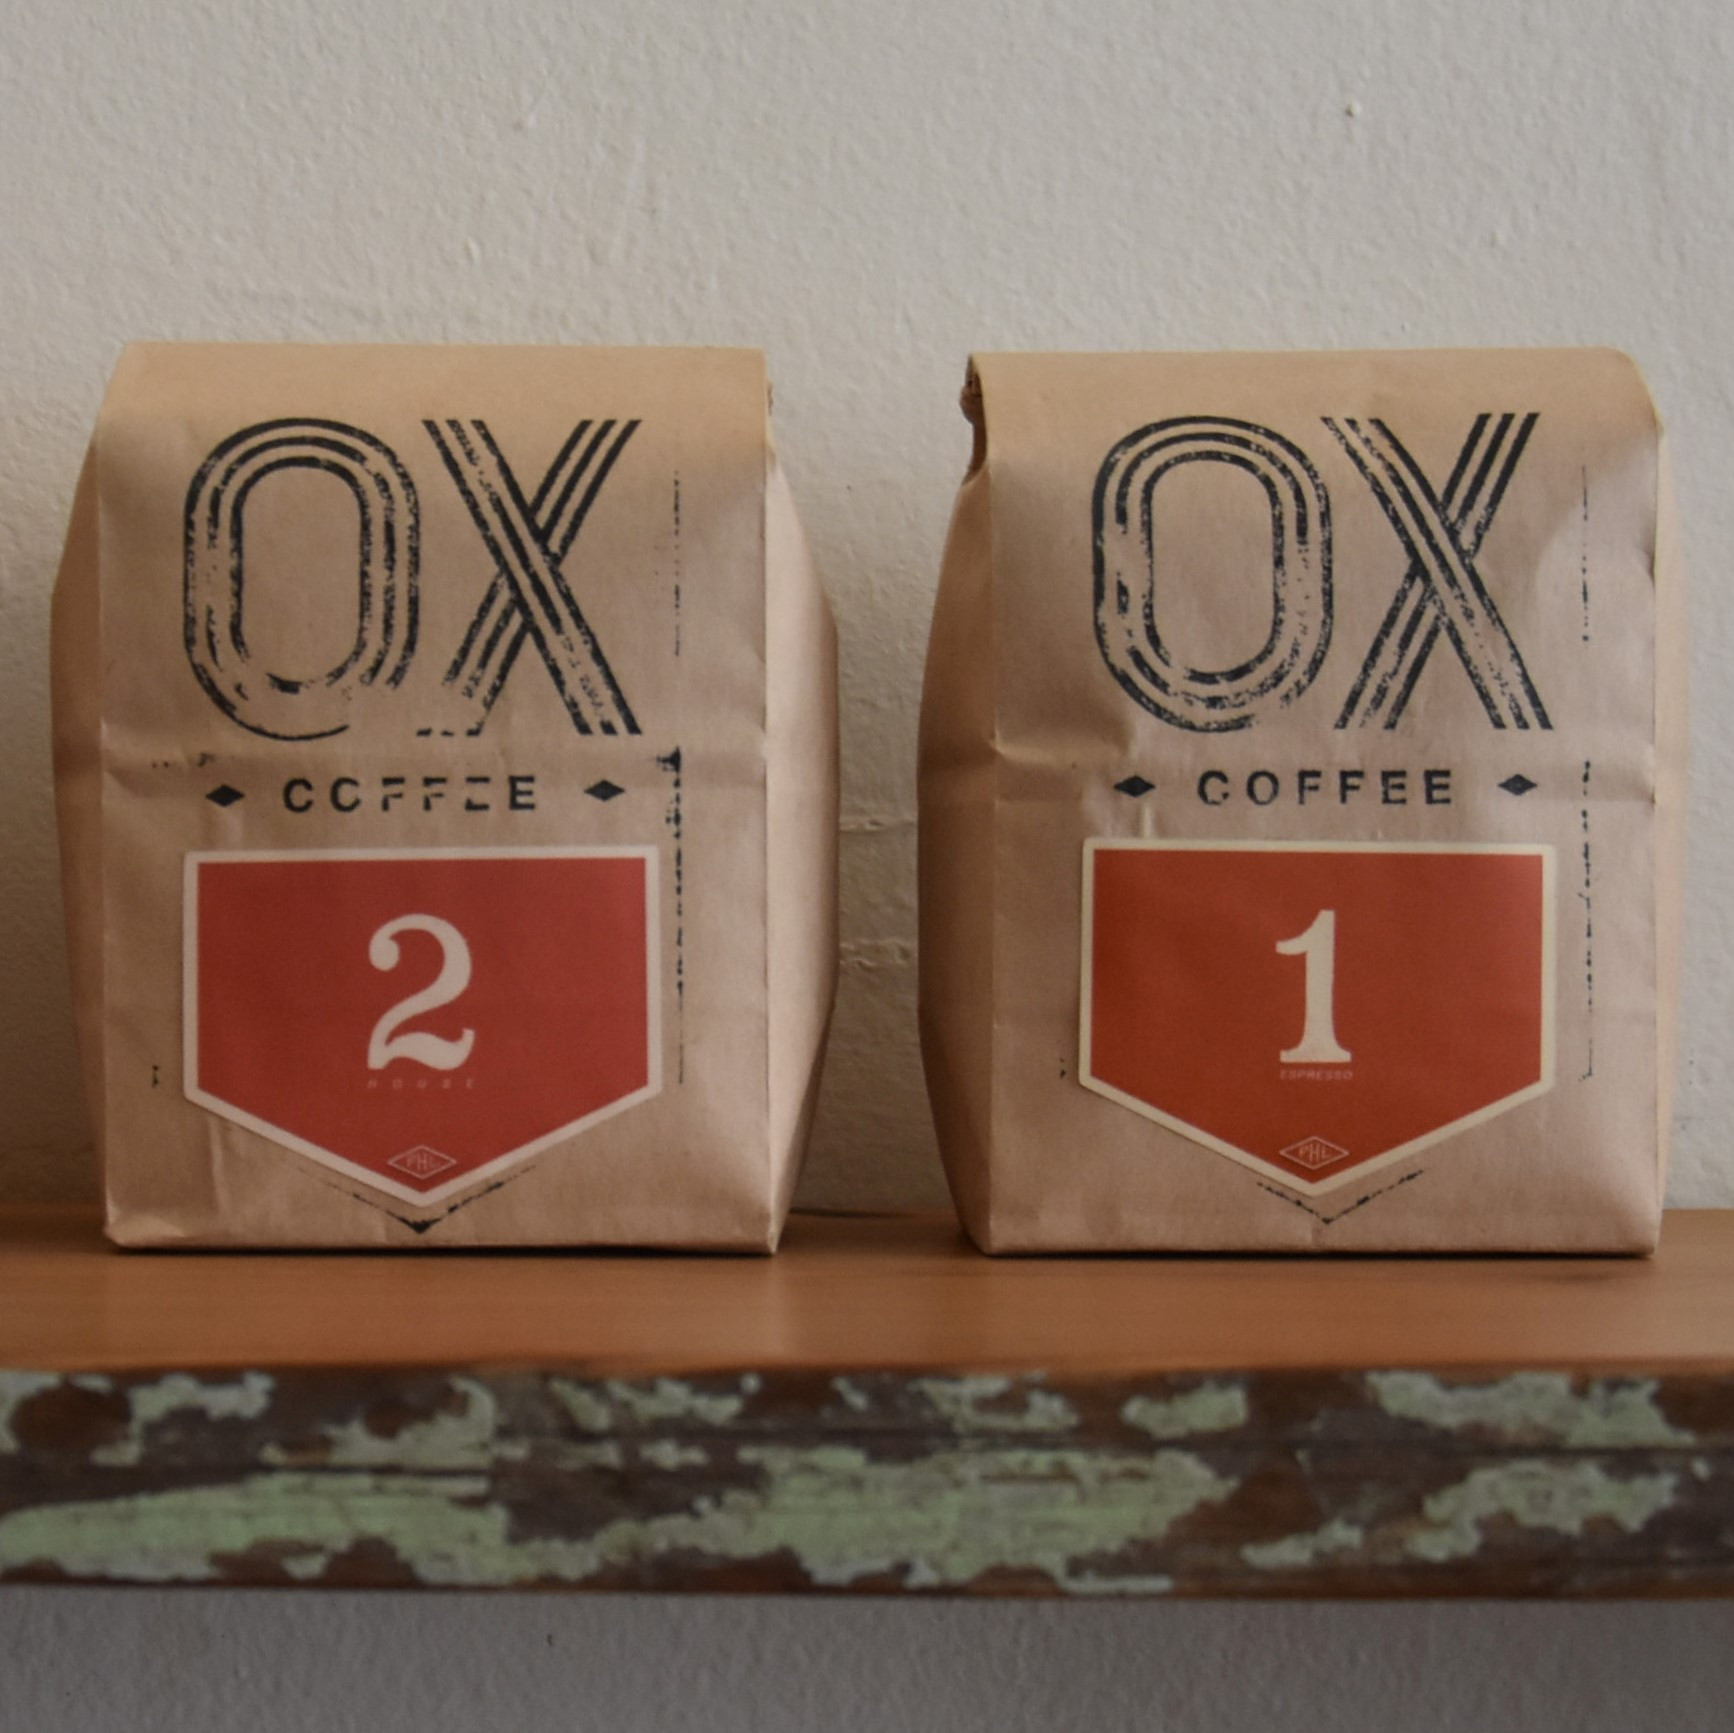 Bags of coffee, roasted in-house for the first time at Ox Coffee, Philadelphia.